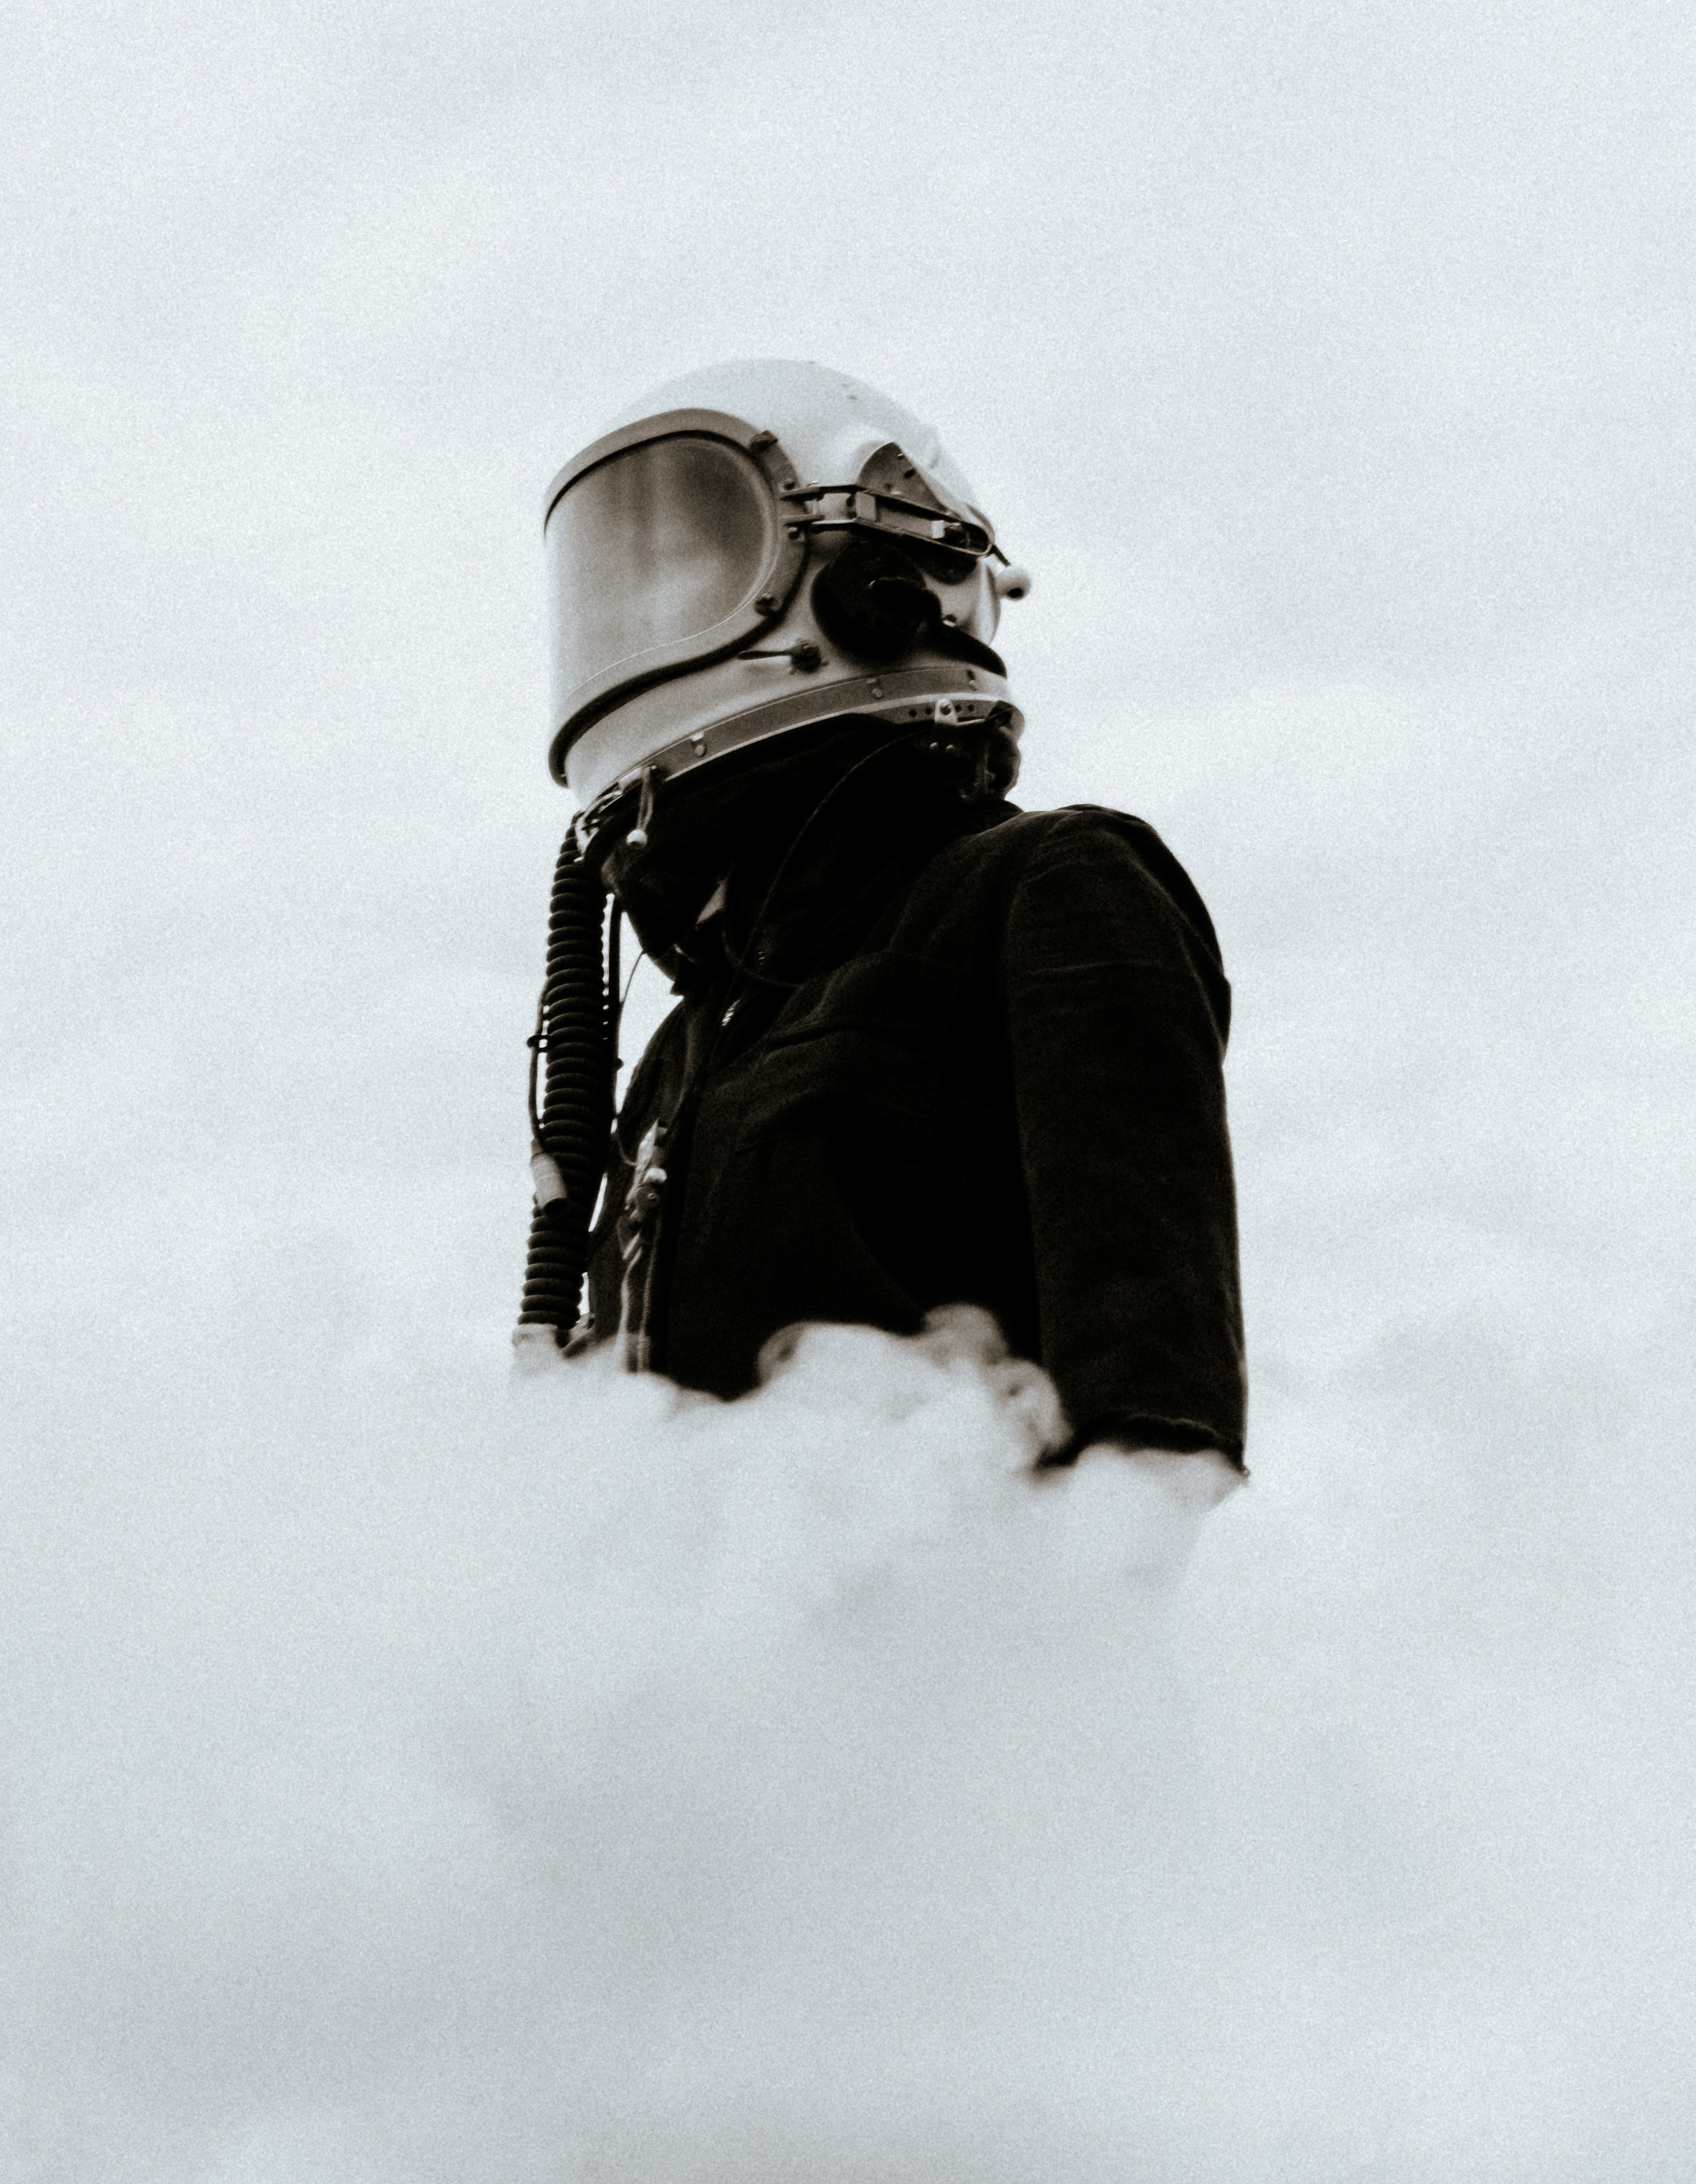 82870 download wallpaper Miscellanea, Miscellaneous, Helmet, Mask, Shroud, Smoke screensavers and pictures for free